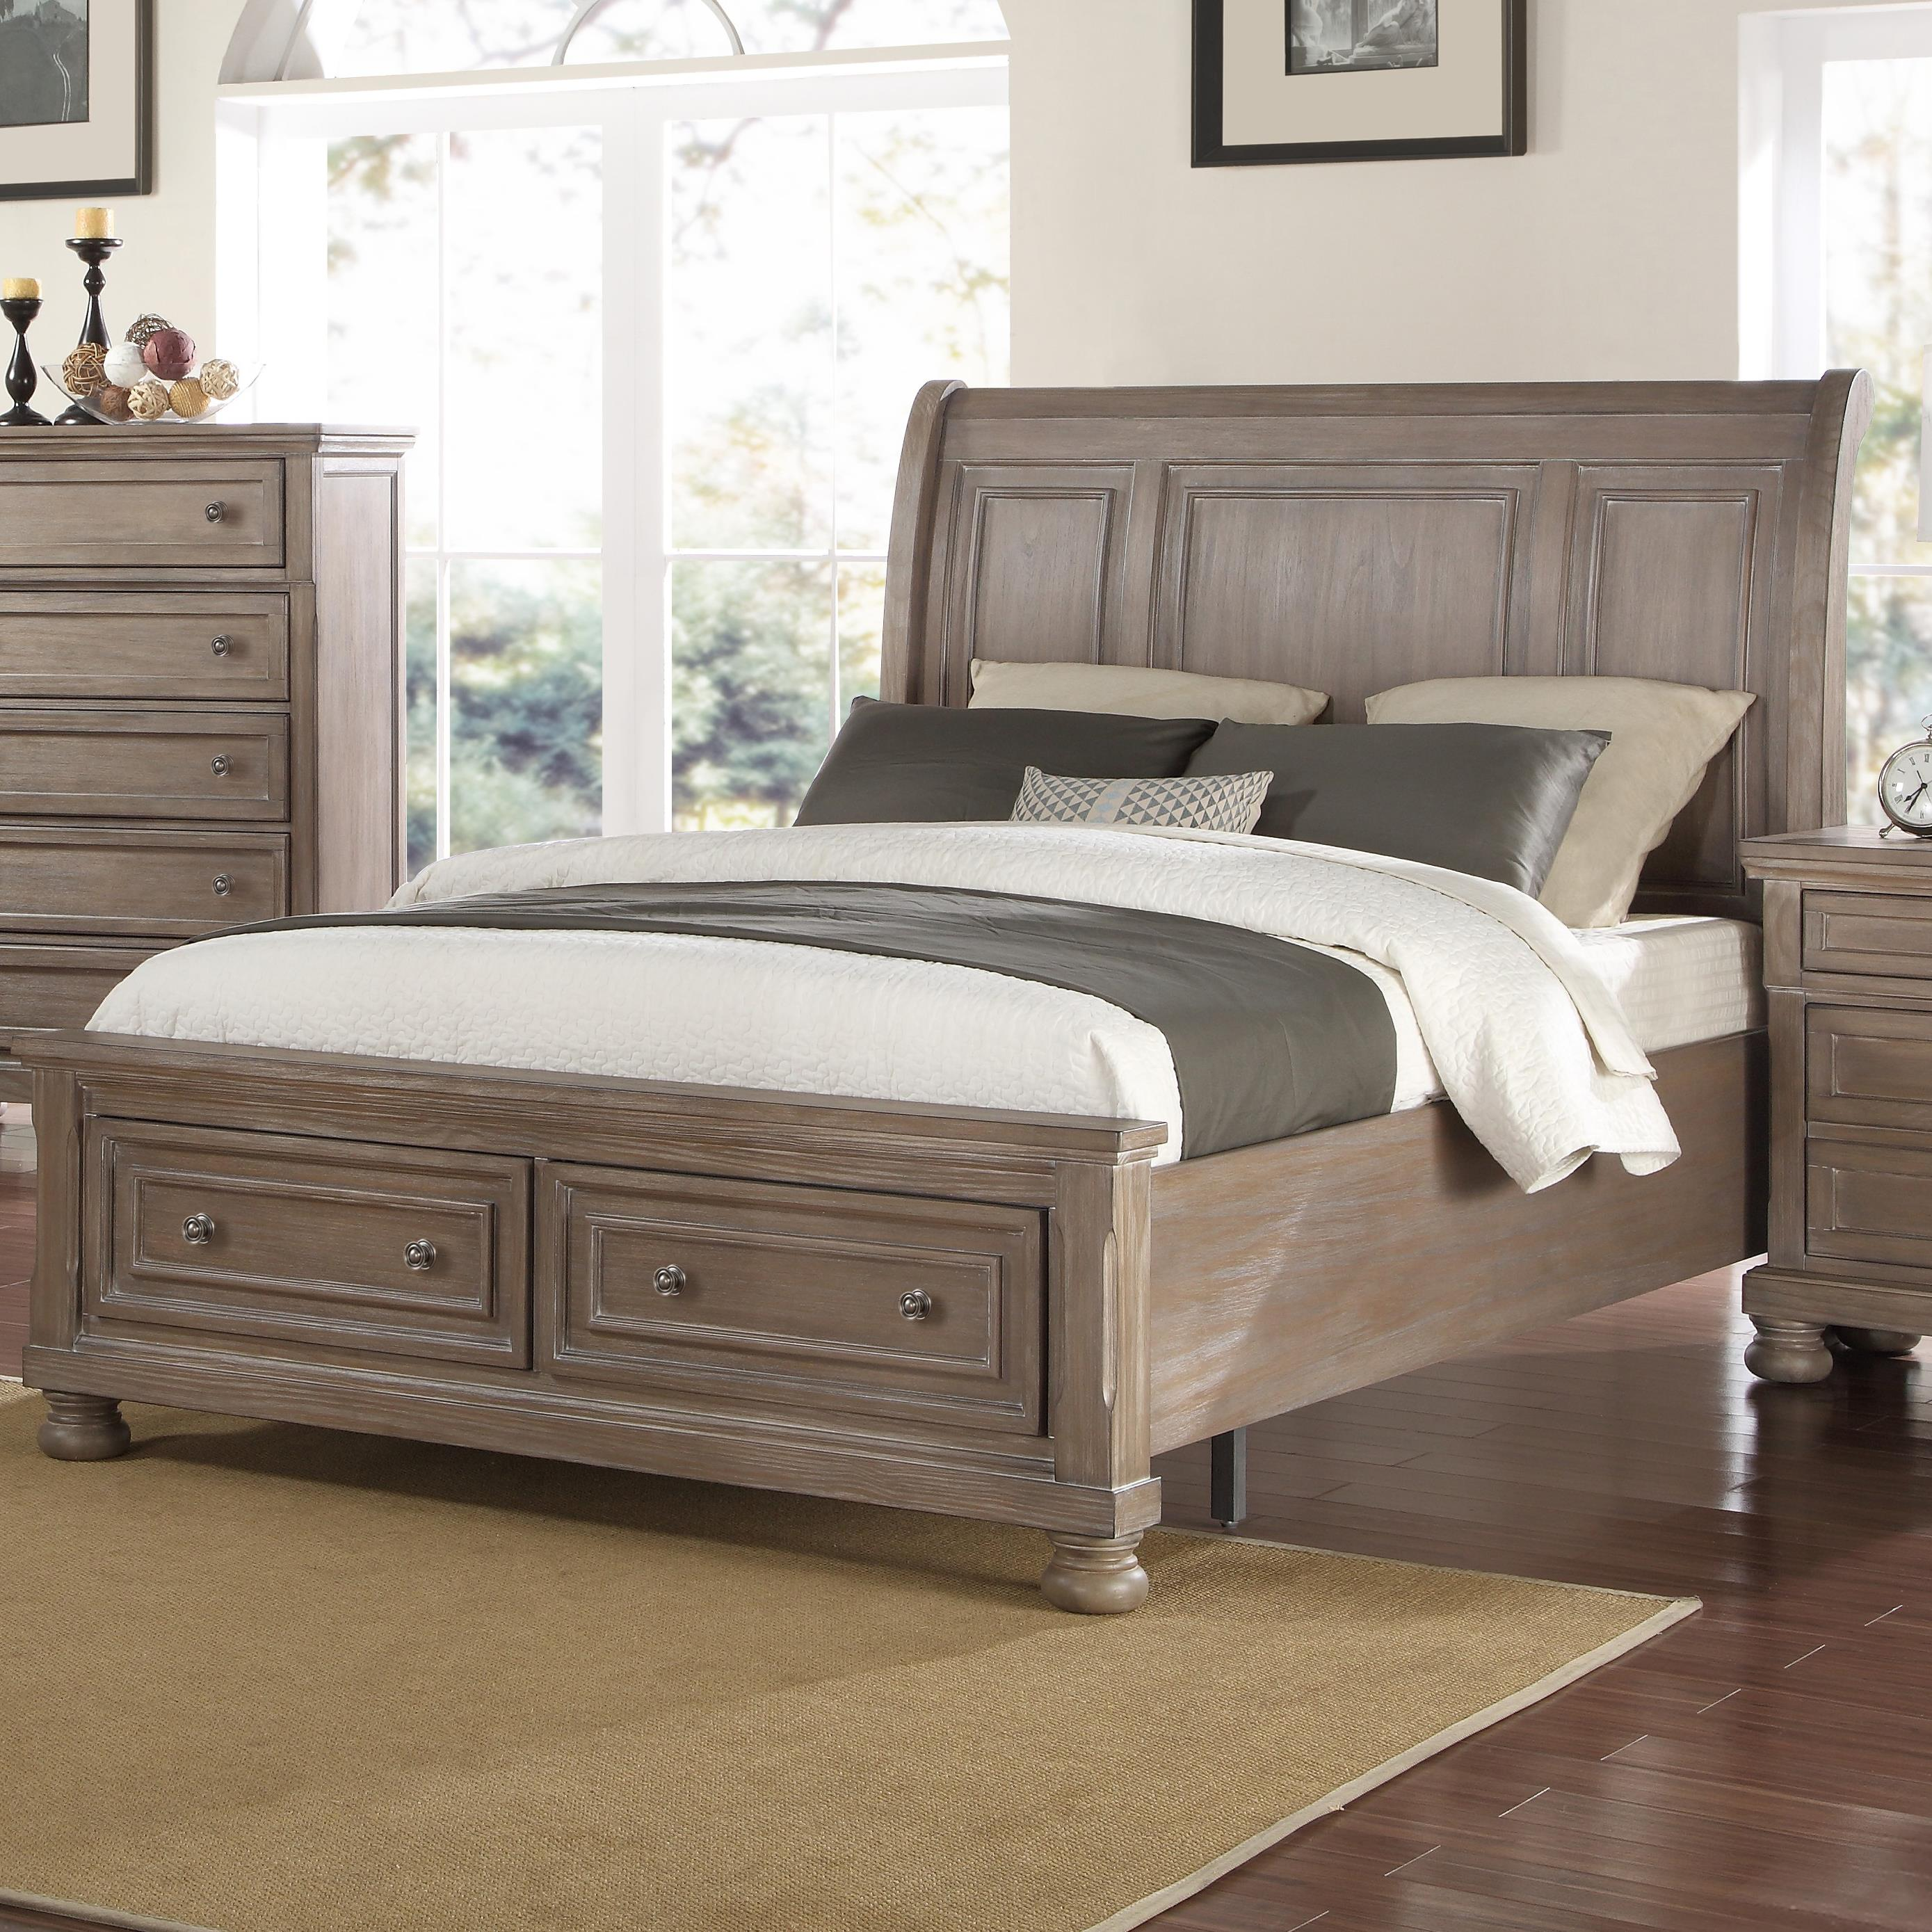 New Classic Allegra California King Low Profile Bed With Footboard Storage Del Sol Furniture